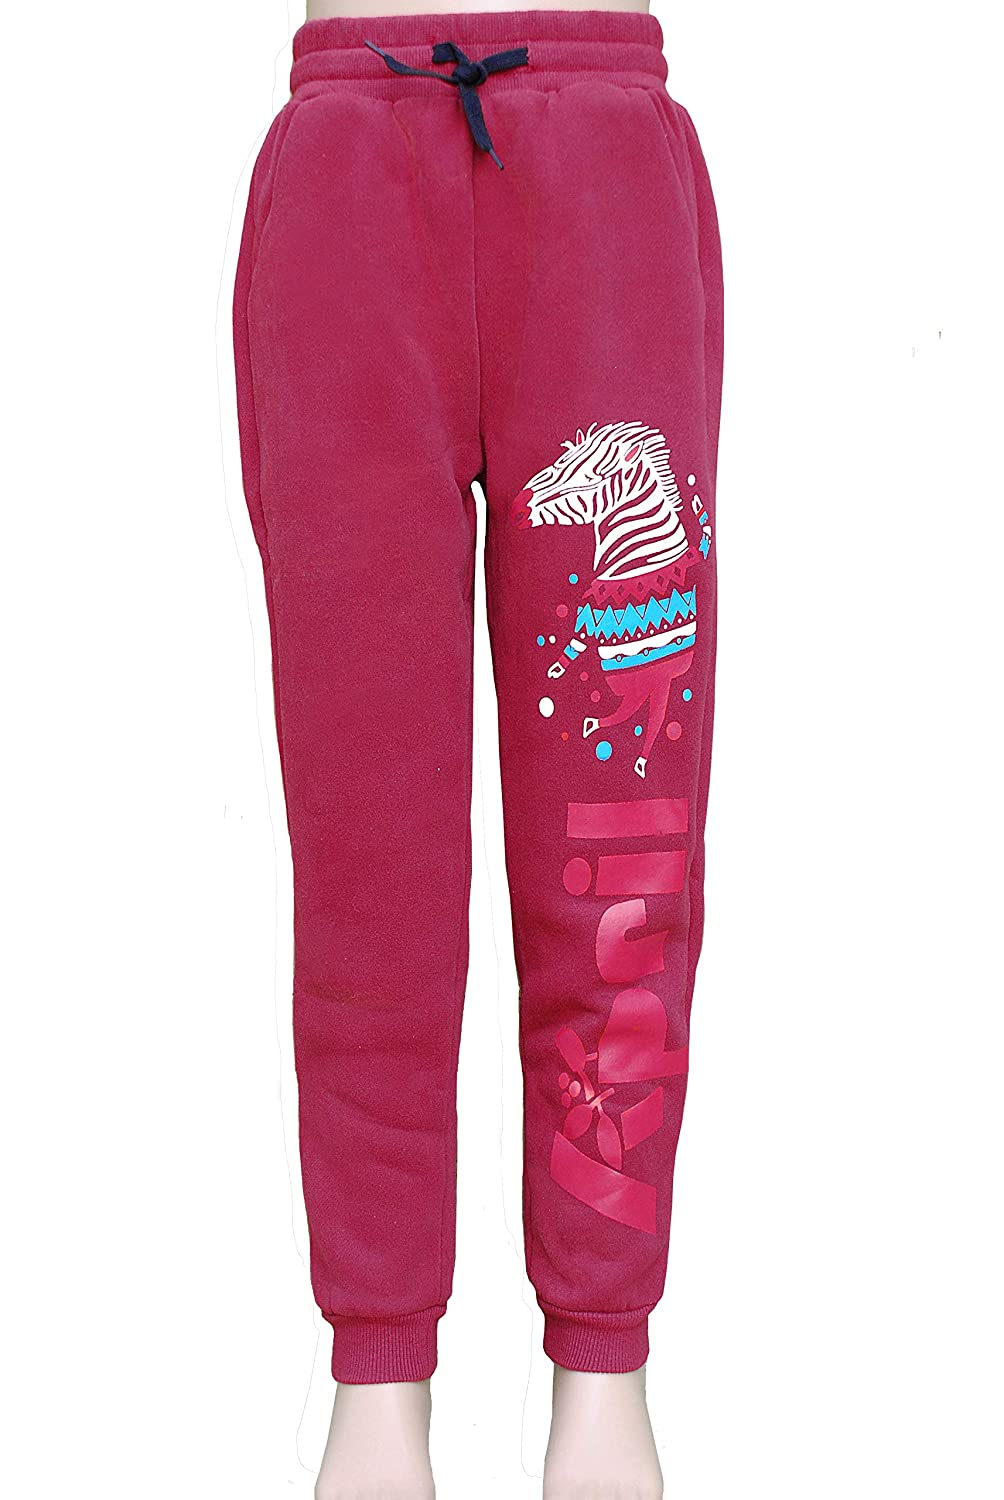 April Kids Horse Jogging Pants for Boys and Girls, Thicker, Unisex Casual Trouser Sweatpants